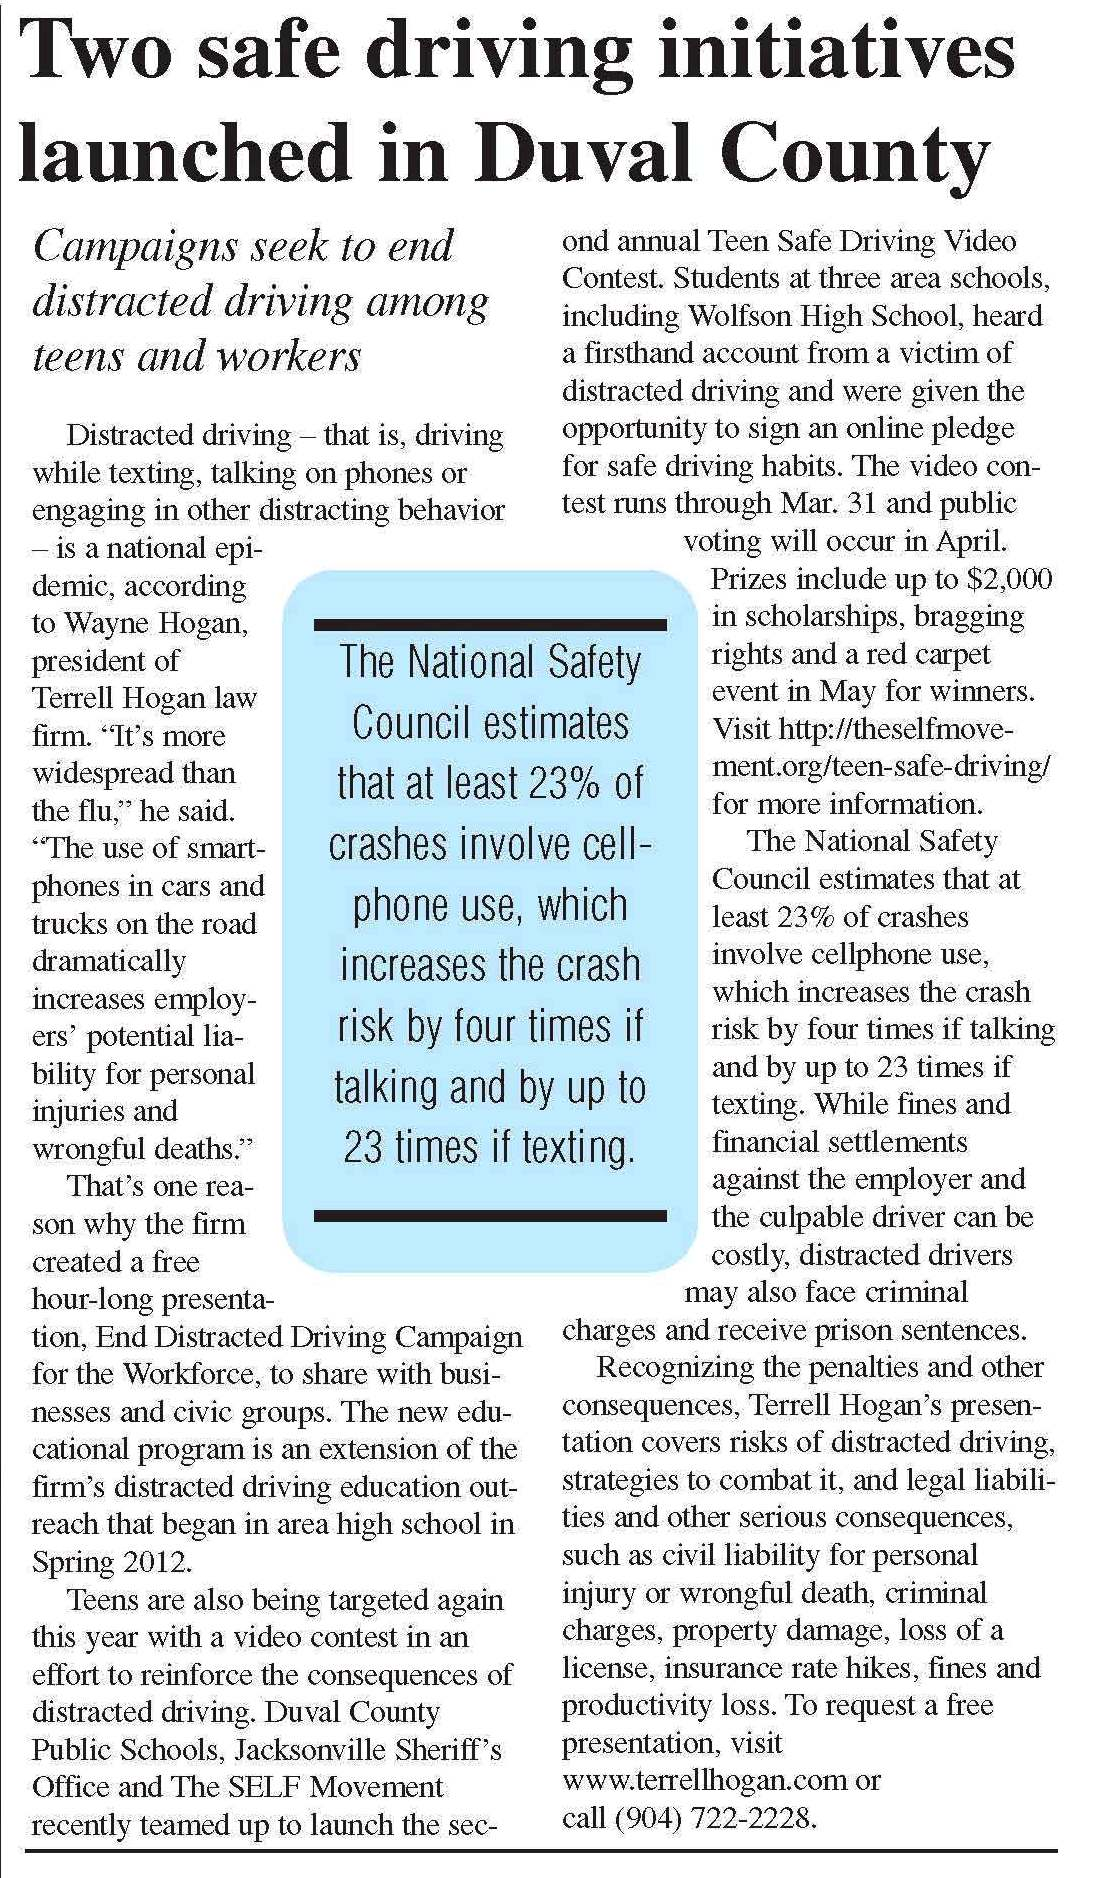 newspaper write-up with regards to safe driving